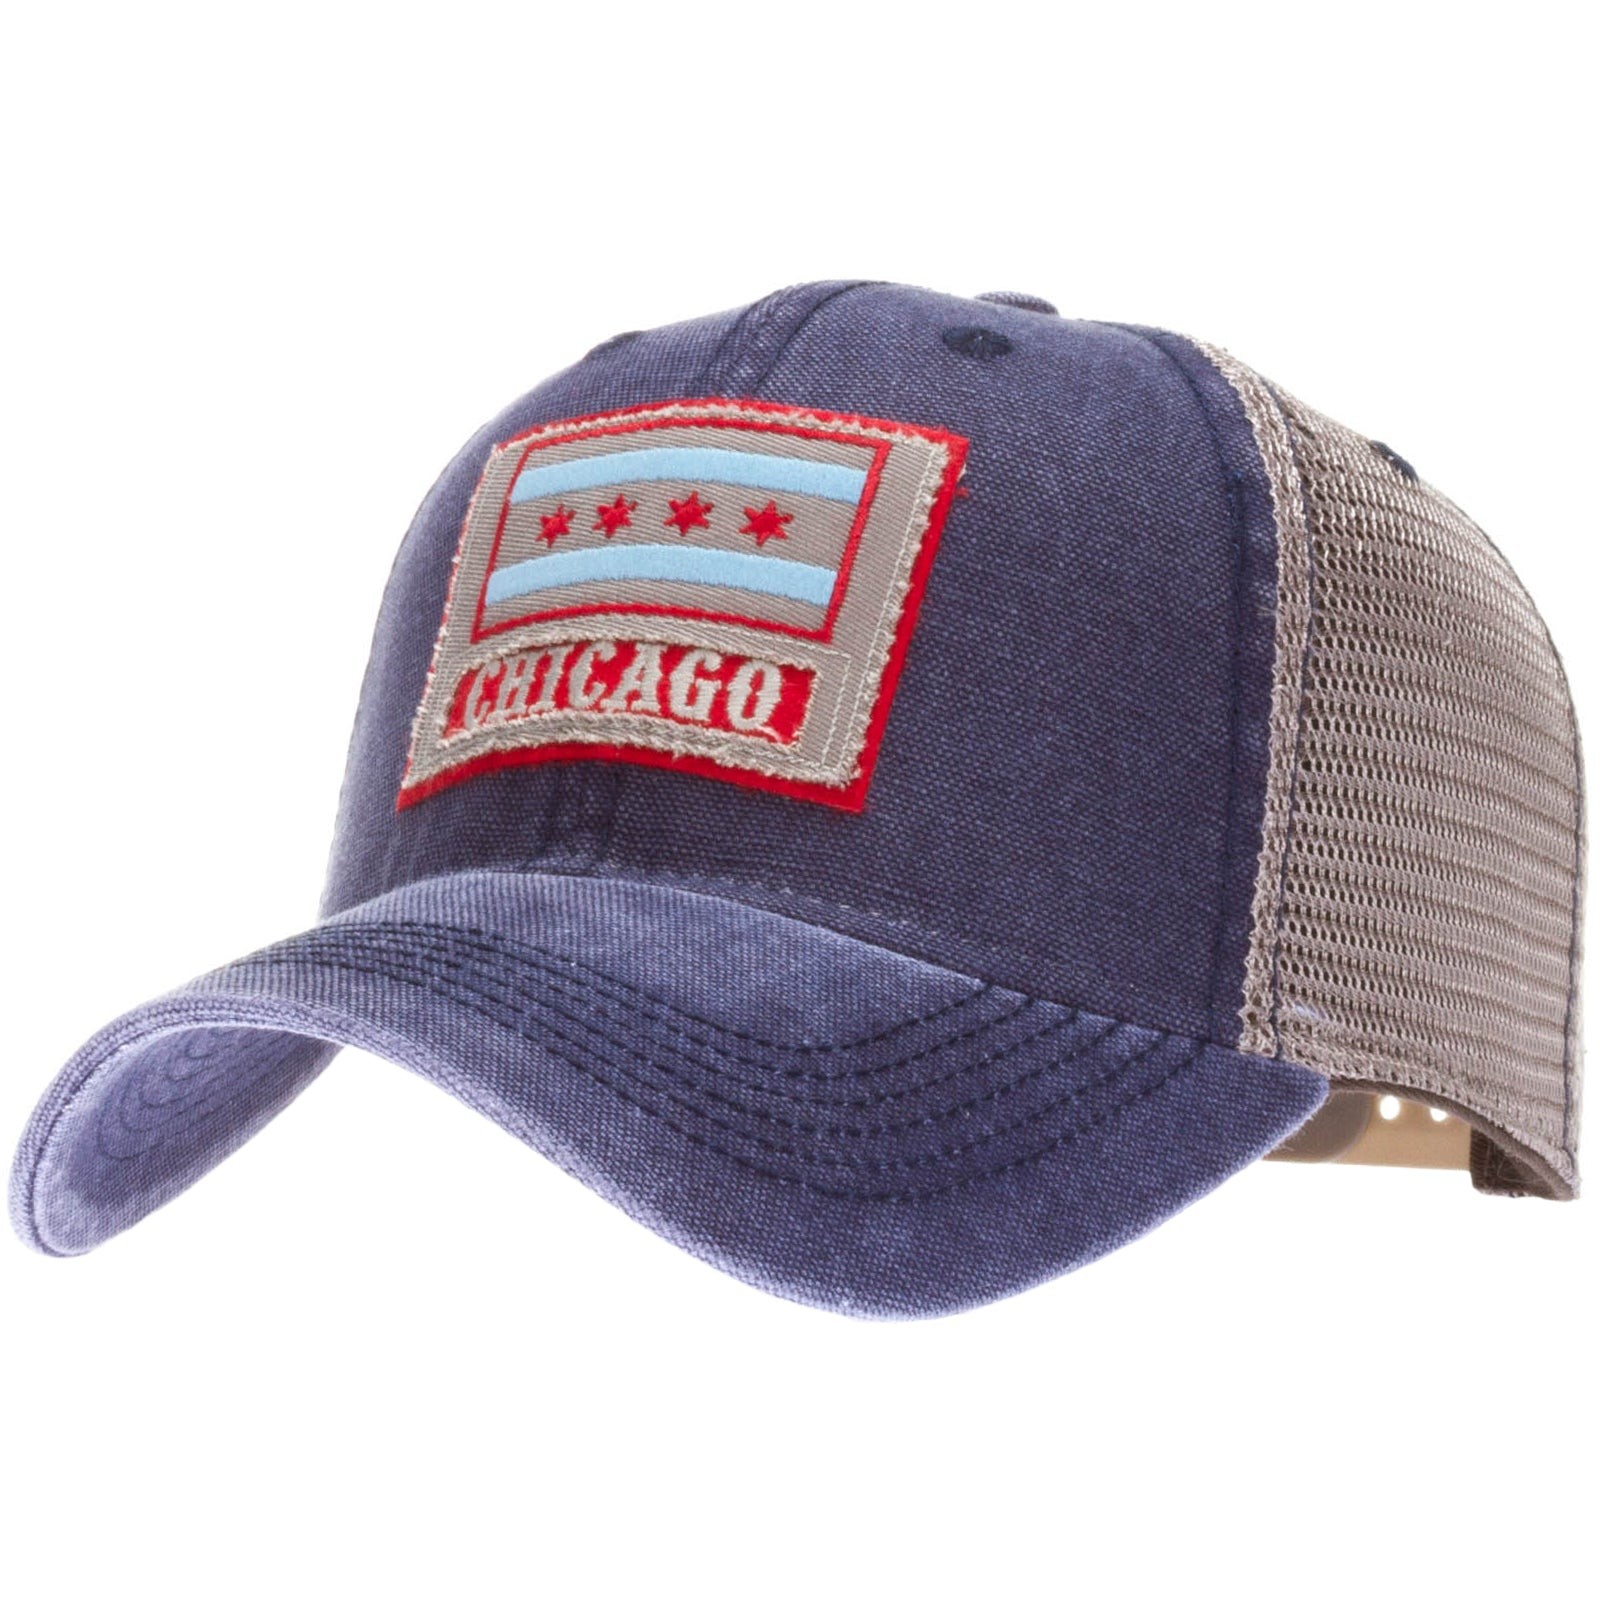 Chicago Flag Washed Trucker Cap w// Mesh Adjustable Strap